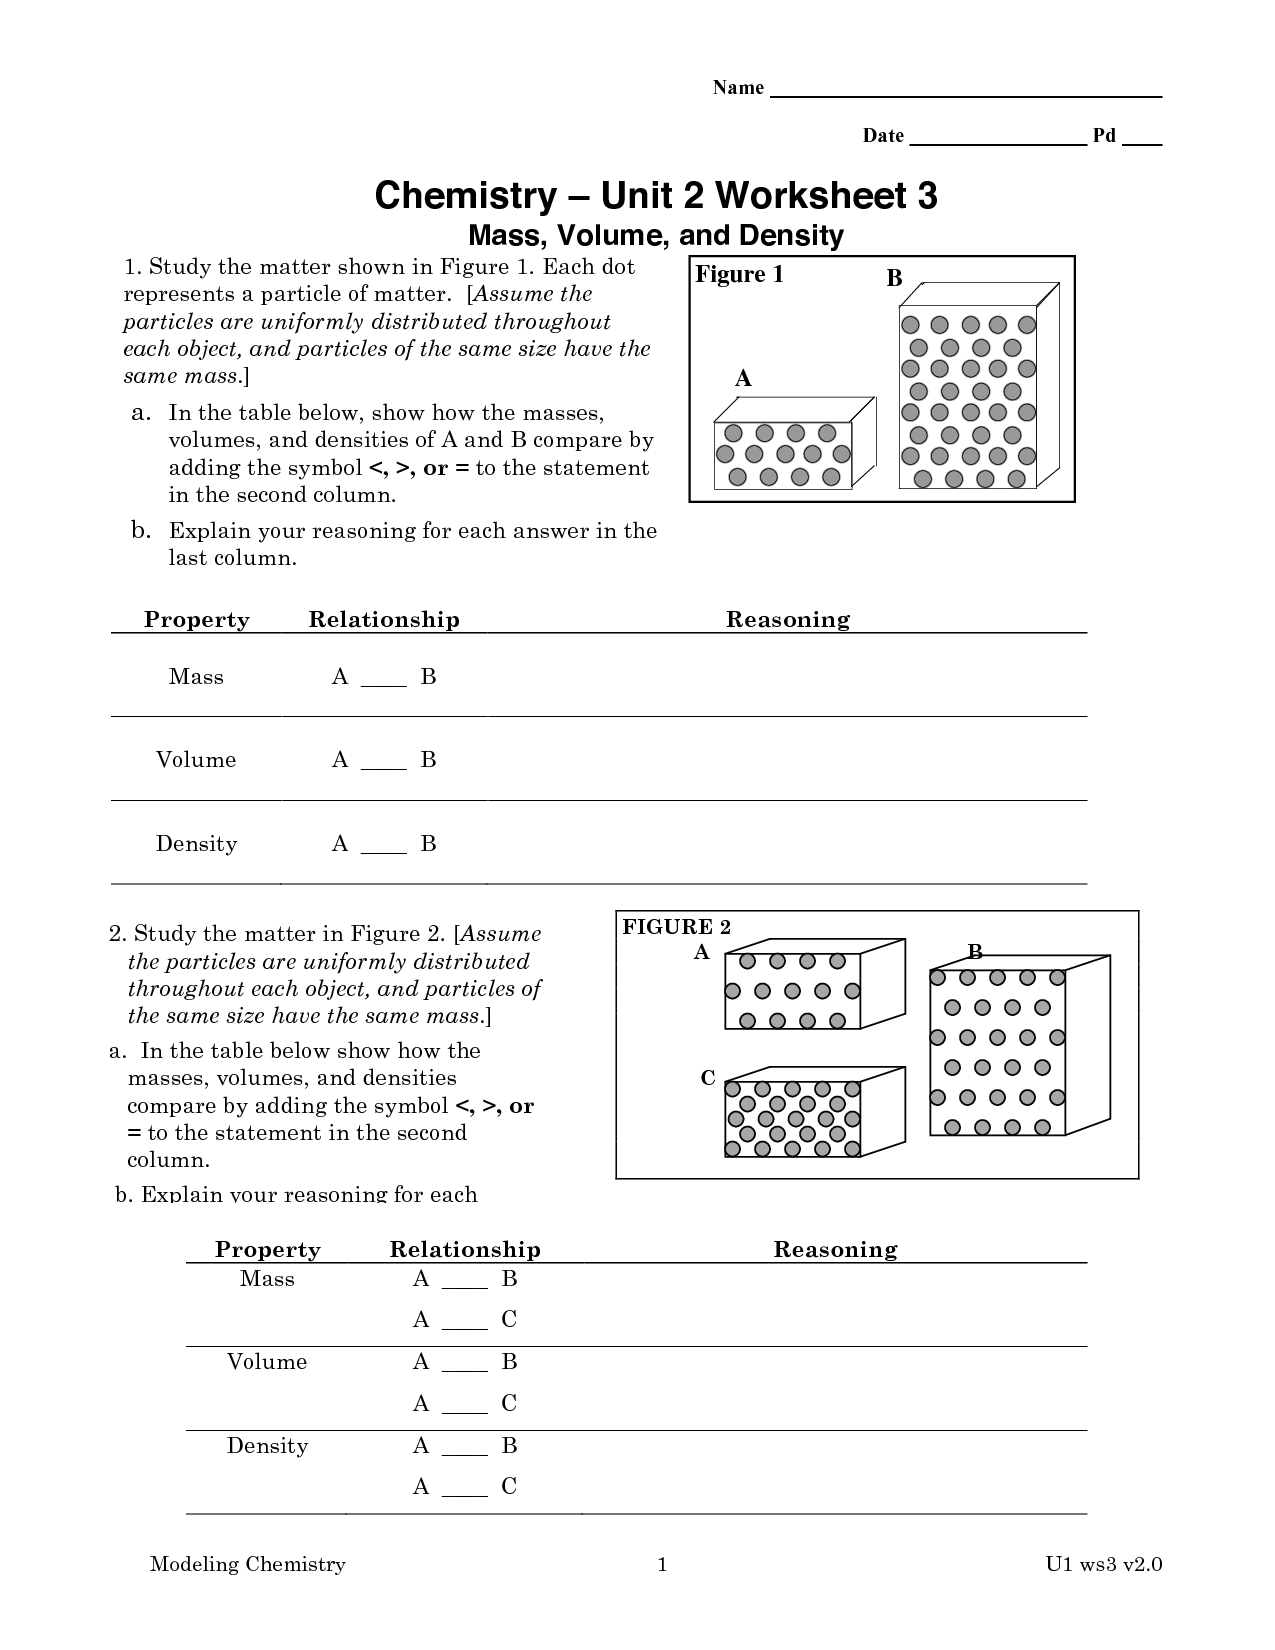 Chemistry Unit 11 Worksheet 3